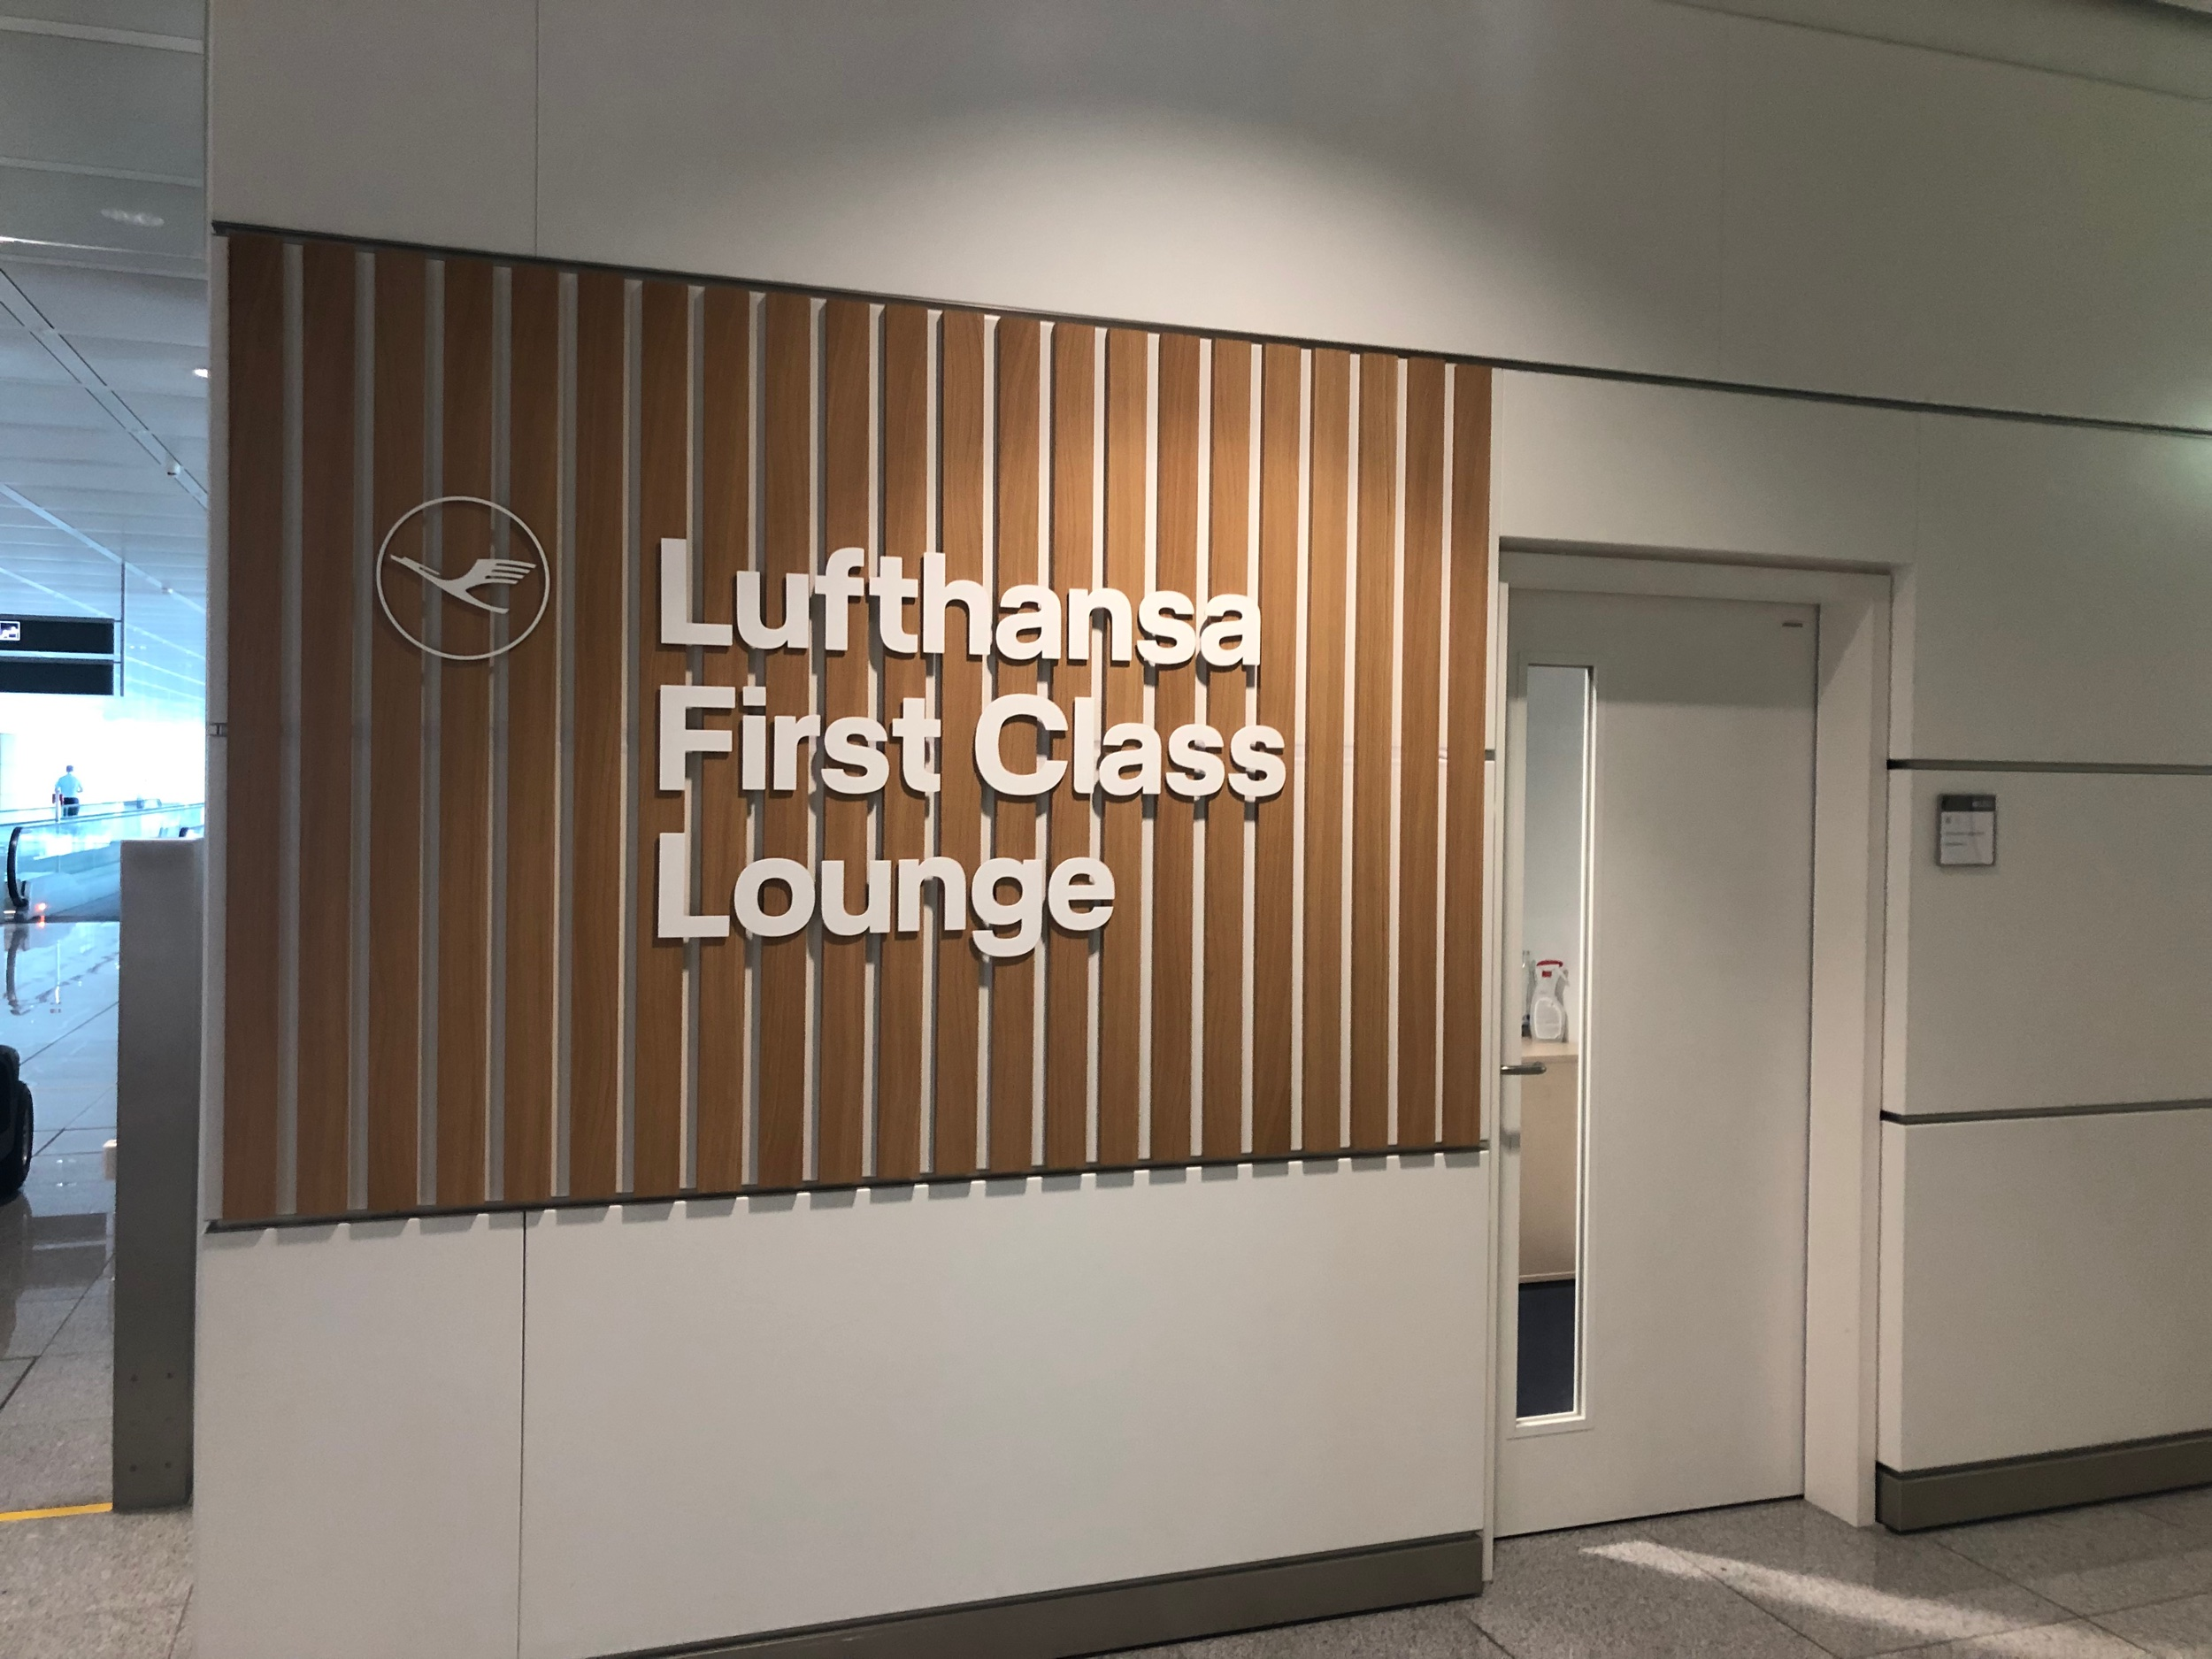 Lufthansa First Class Lounge Munich Entrance